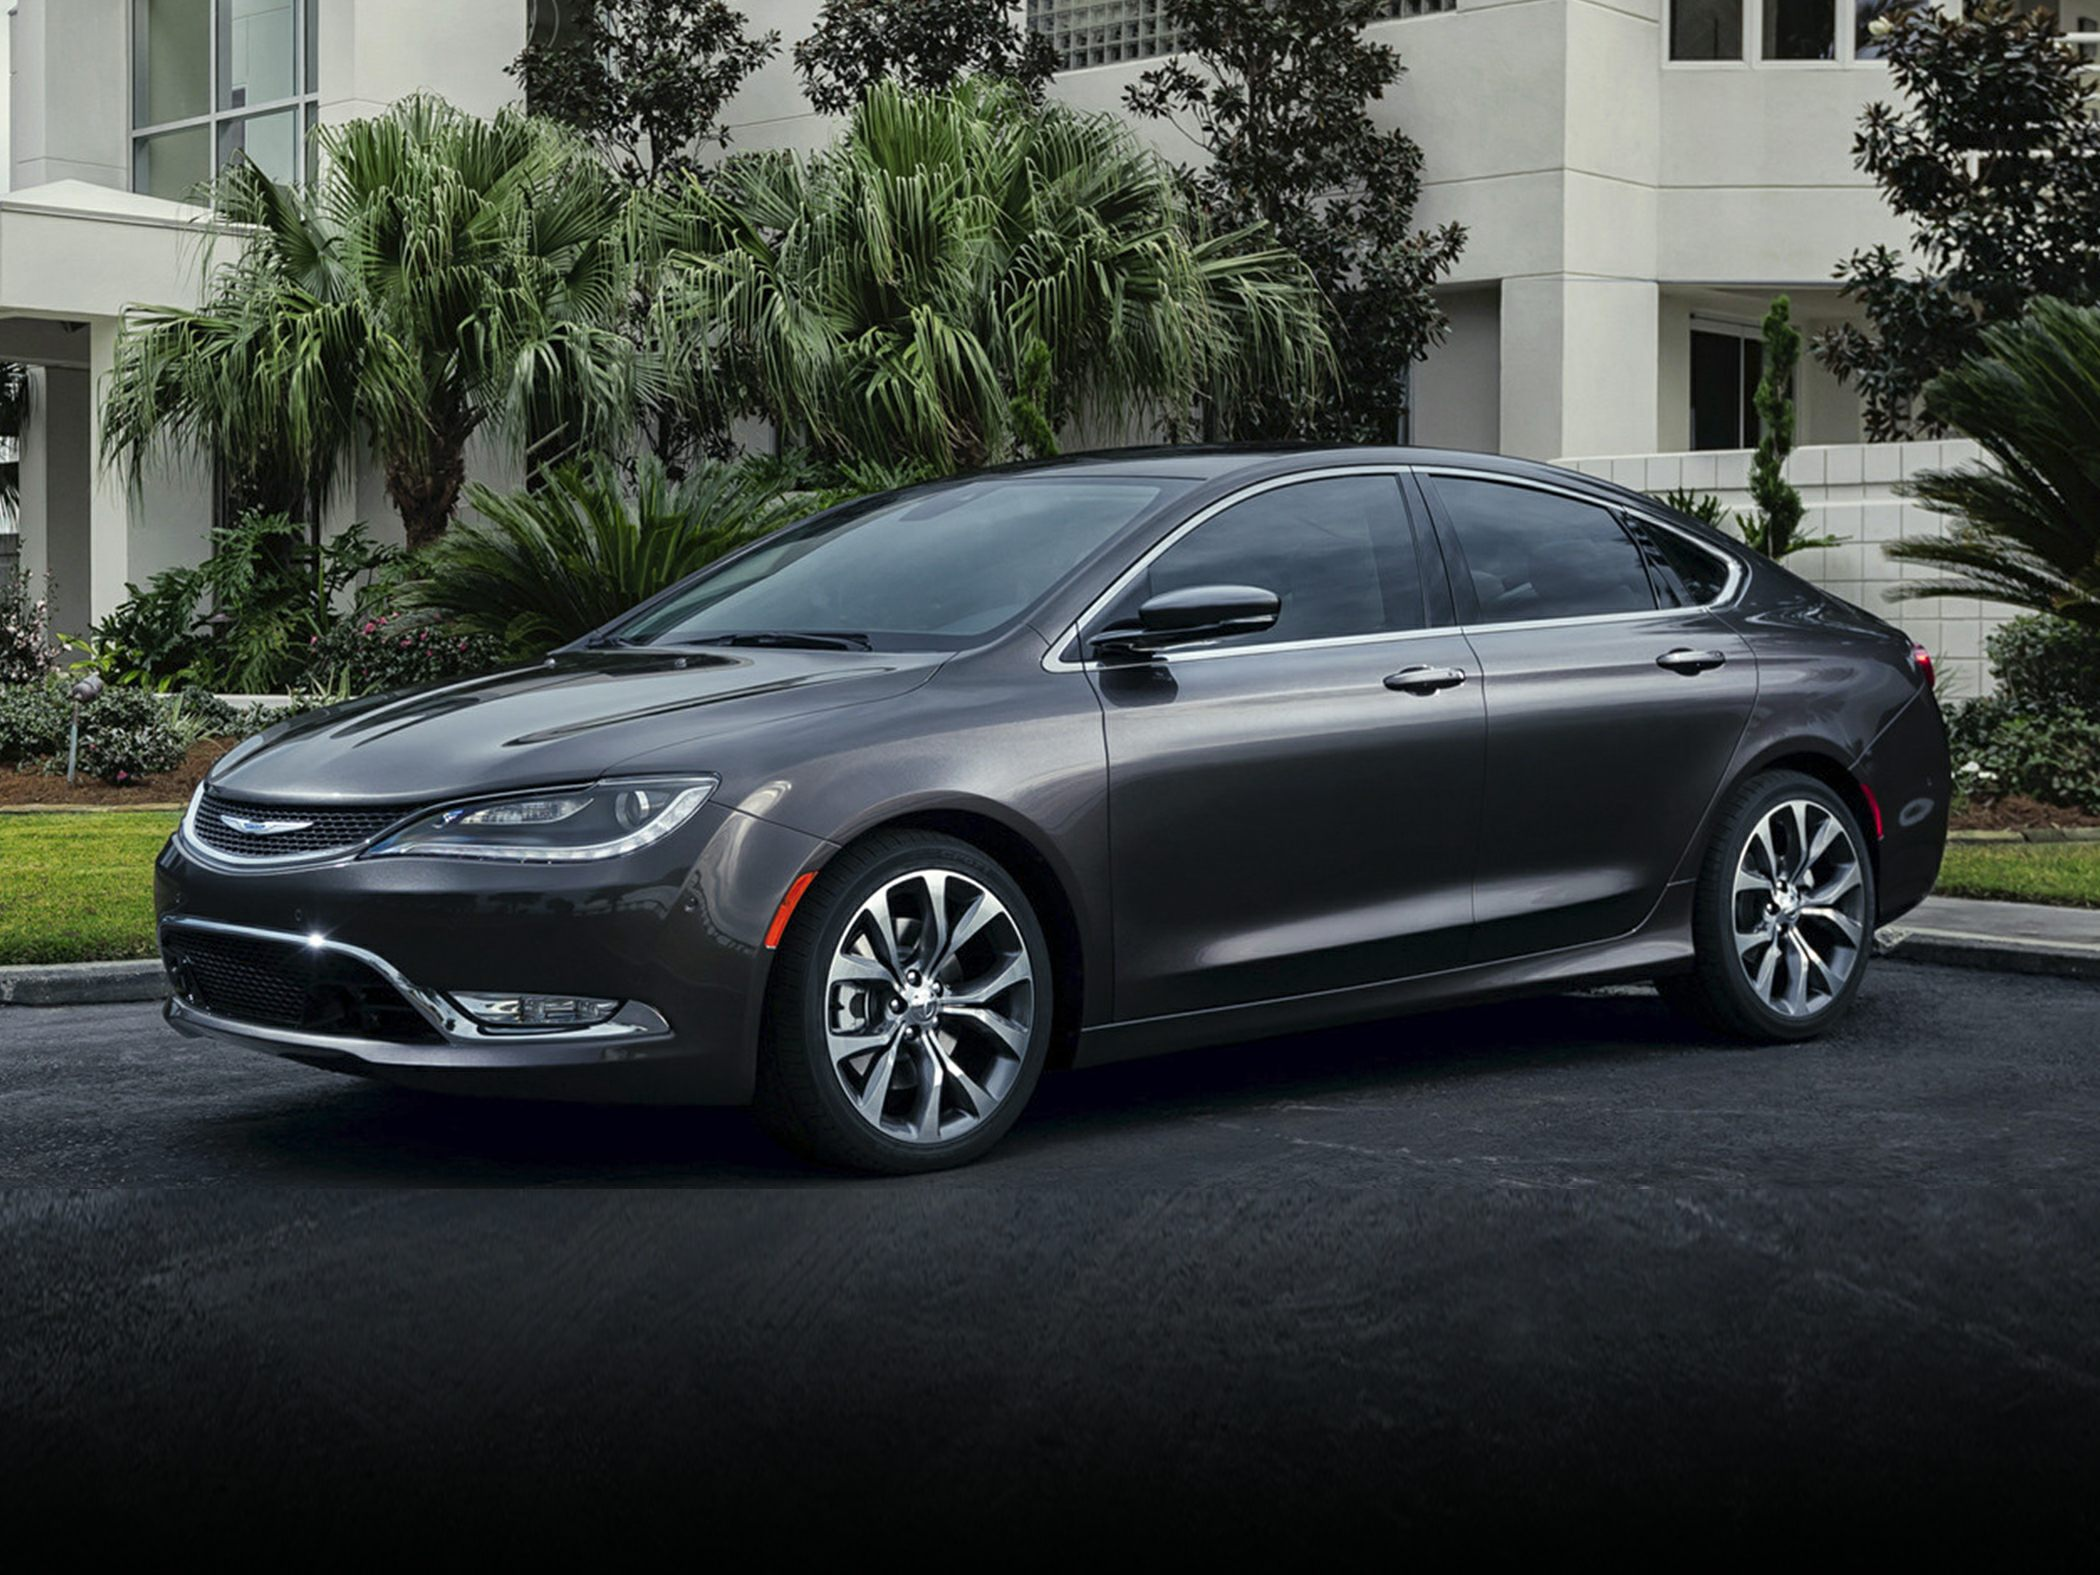 2016 Chrysler 200 Styles Amp Features Highlights